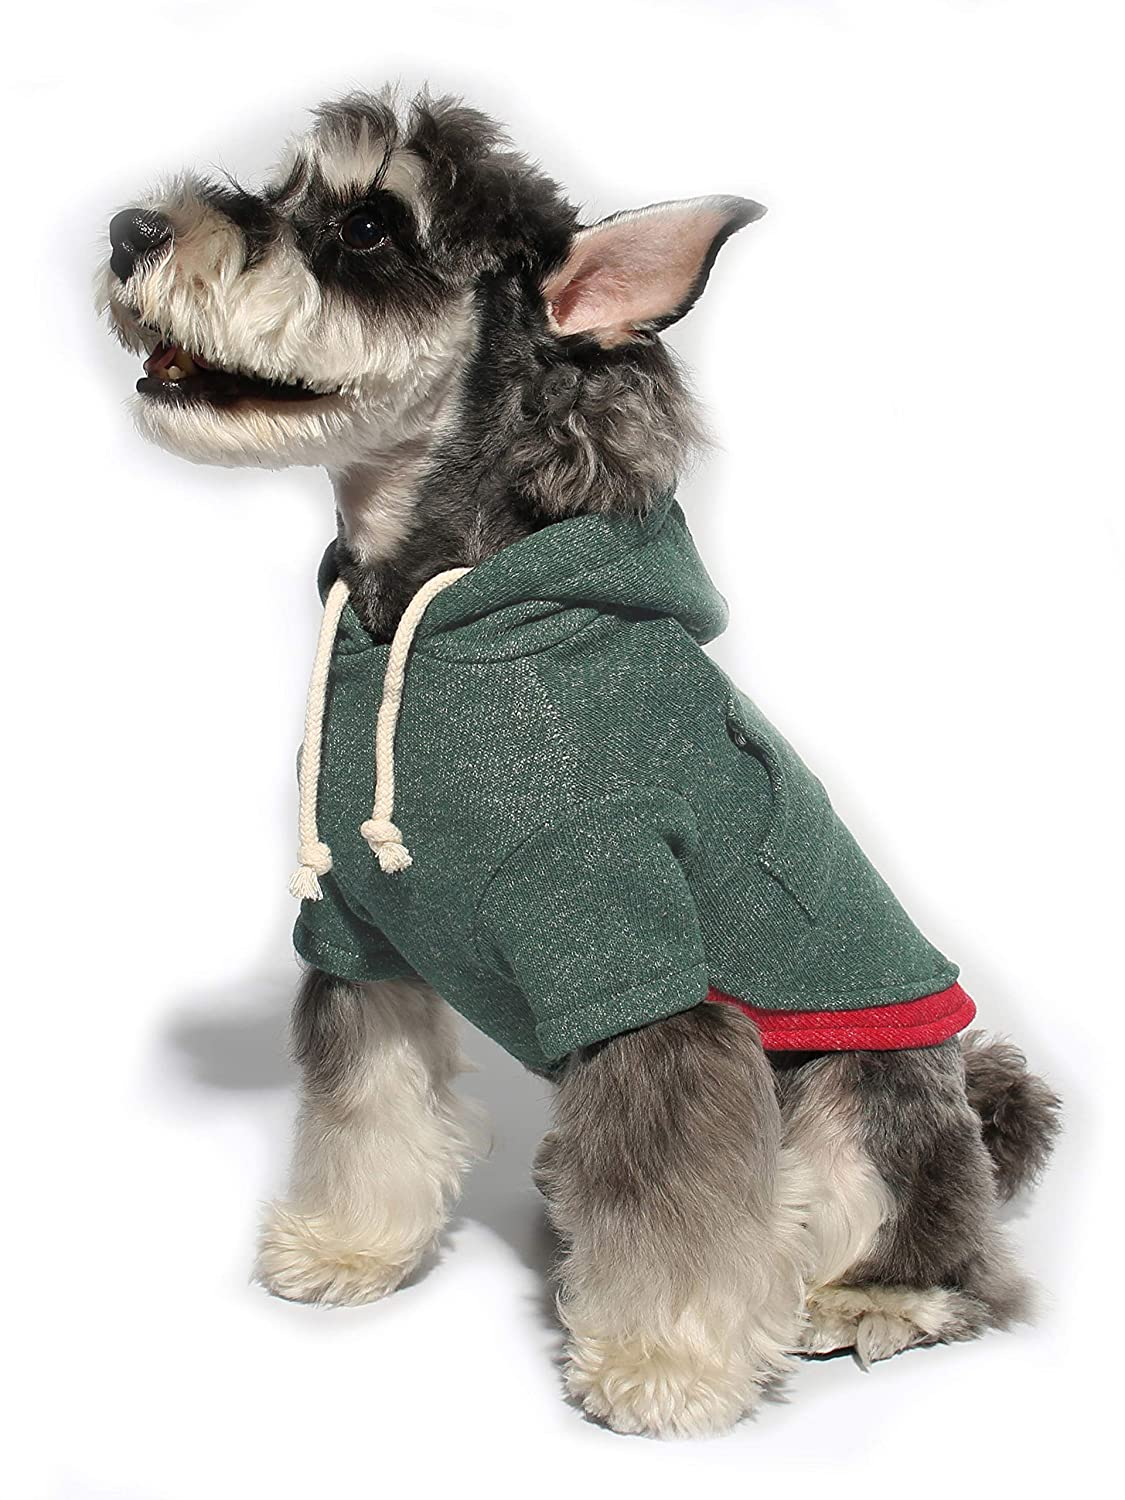 Gyapet Dog Sweater Hoodie Shirt for Small Pets Red Green Outfits Cloth Cotton Girl Boy Appreal